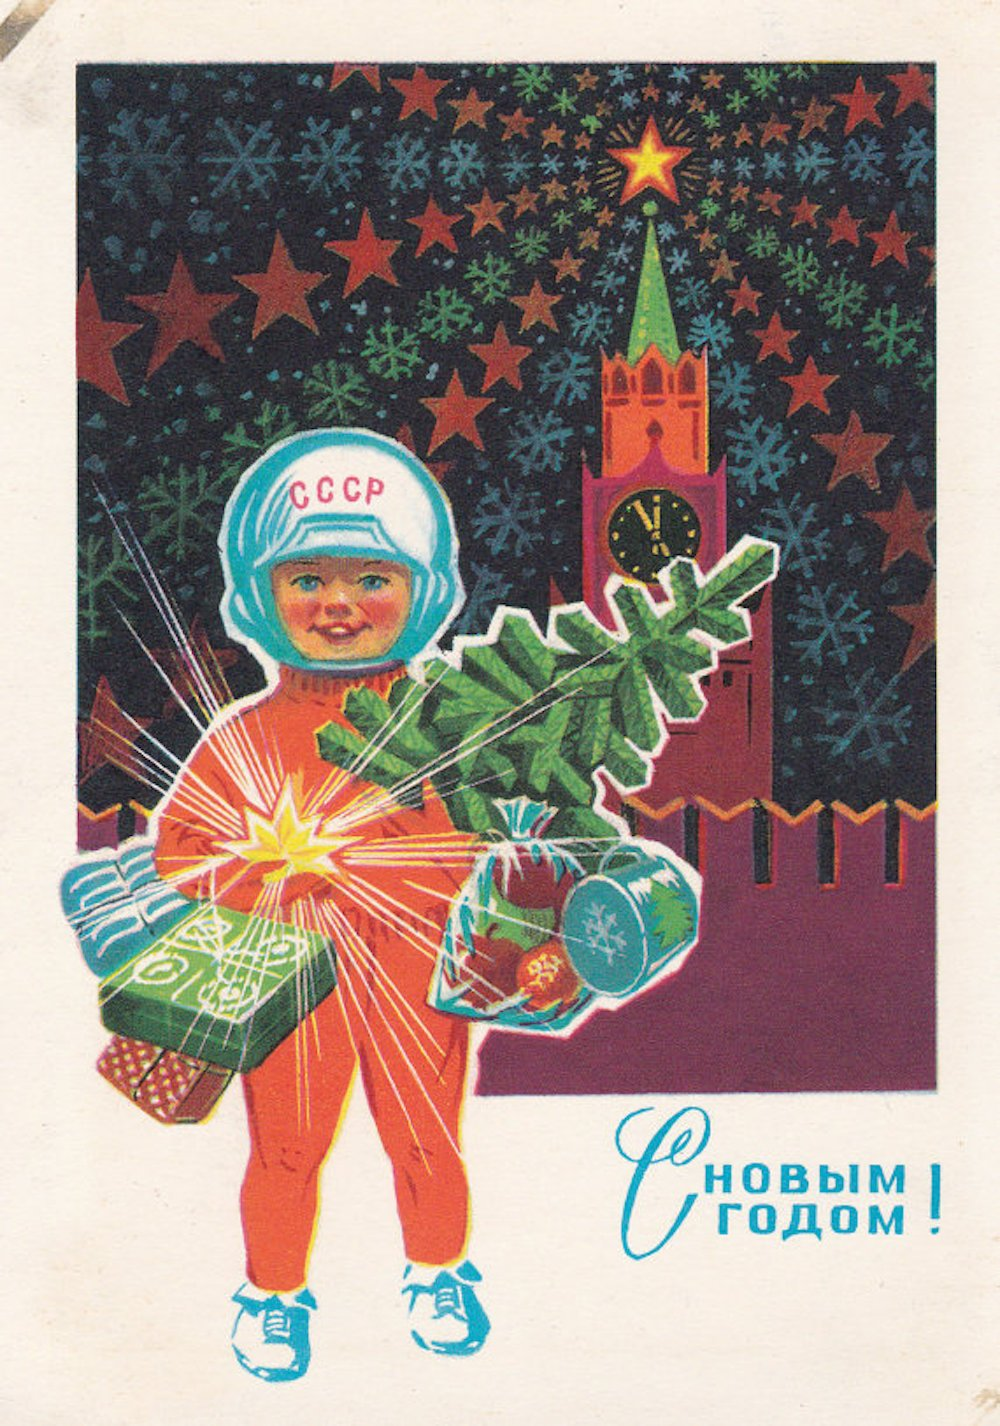 Soviet New Year postcard by artist Nikolai Kolesnikov from 1972. Image courtesy soviet-postcards.com